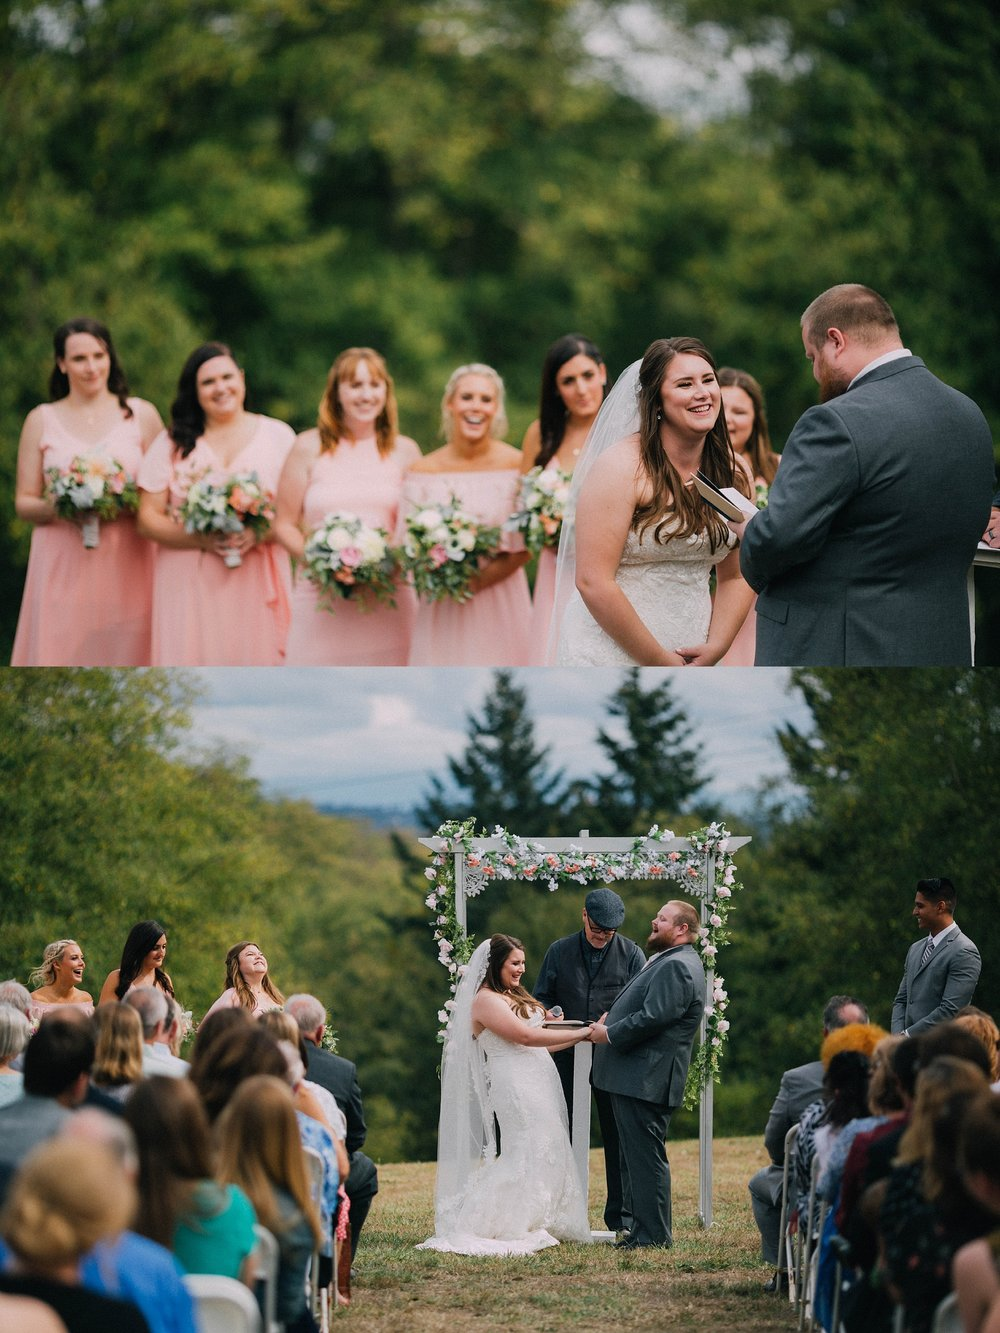 karisa ryan - vashon island backyard wedding photographer - seattle area backyard wedding photography - ashley vos-15.jpg